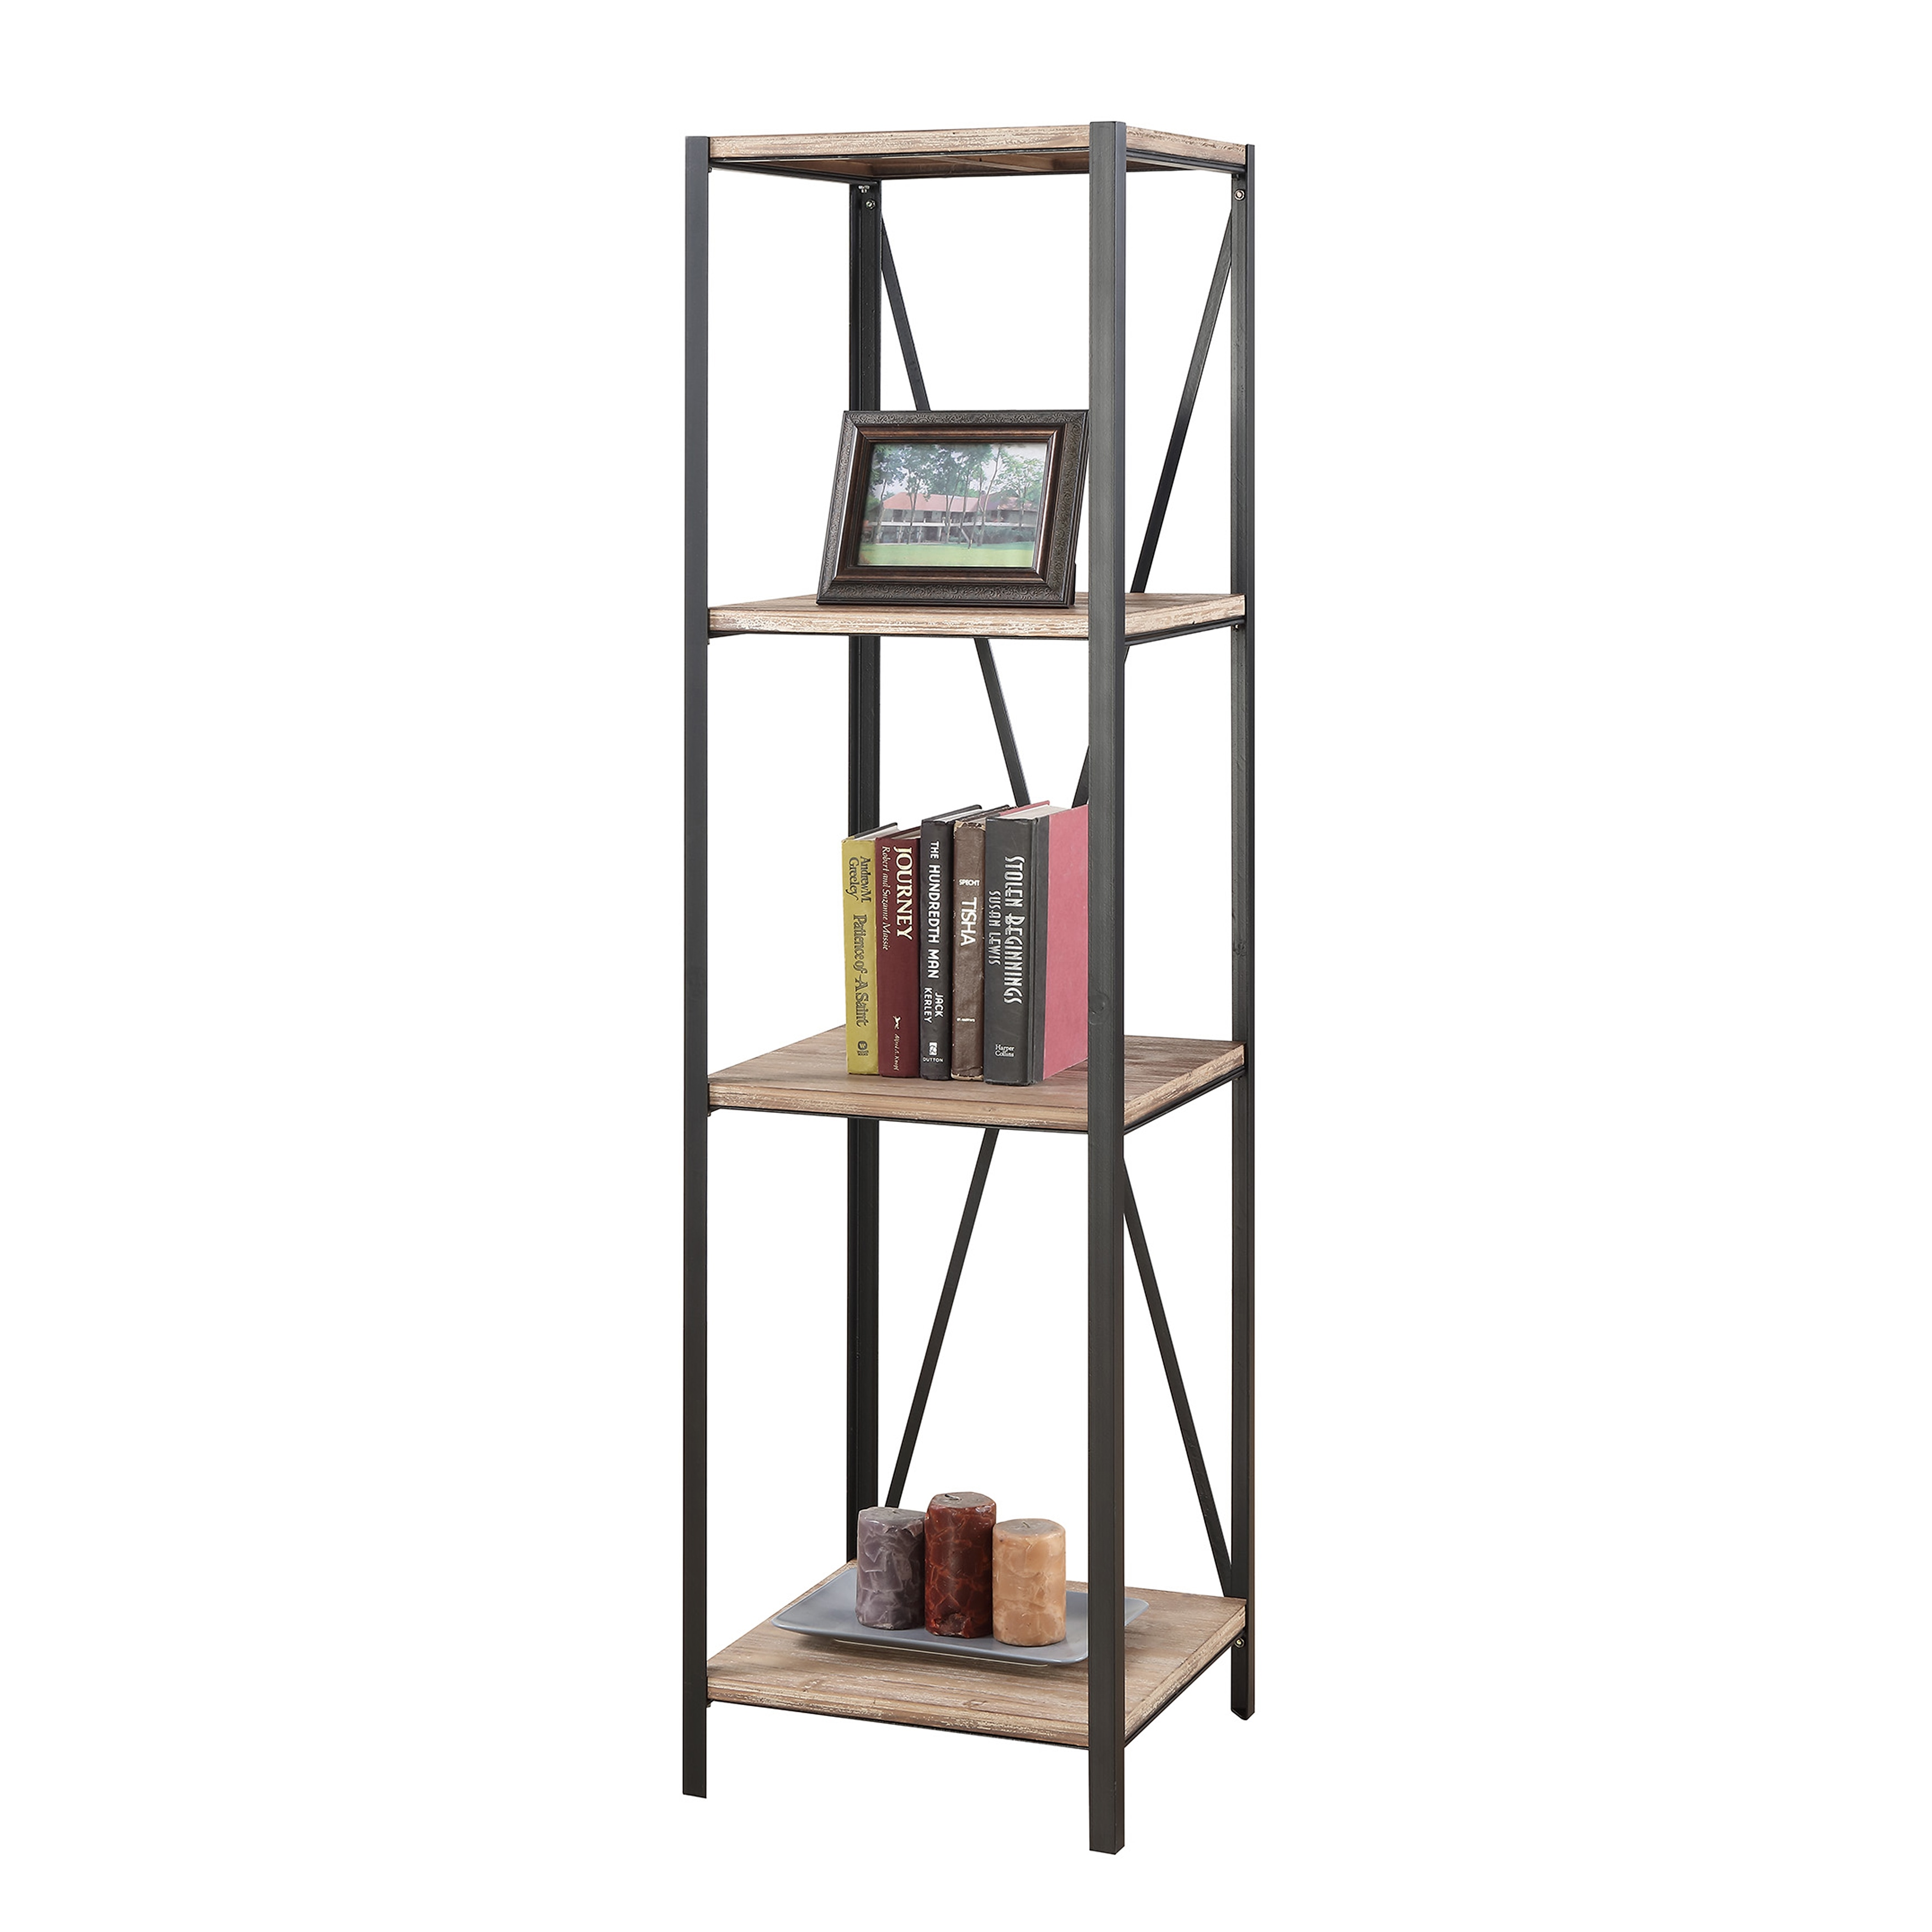 display state bookcases towers birch furniture bookcase tower industries distinctive cornhusker nebraska item products